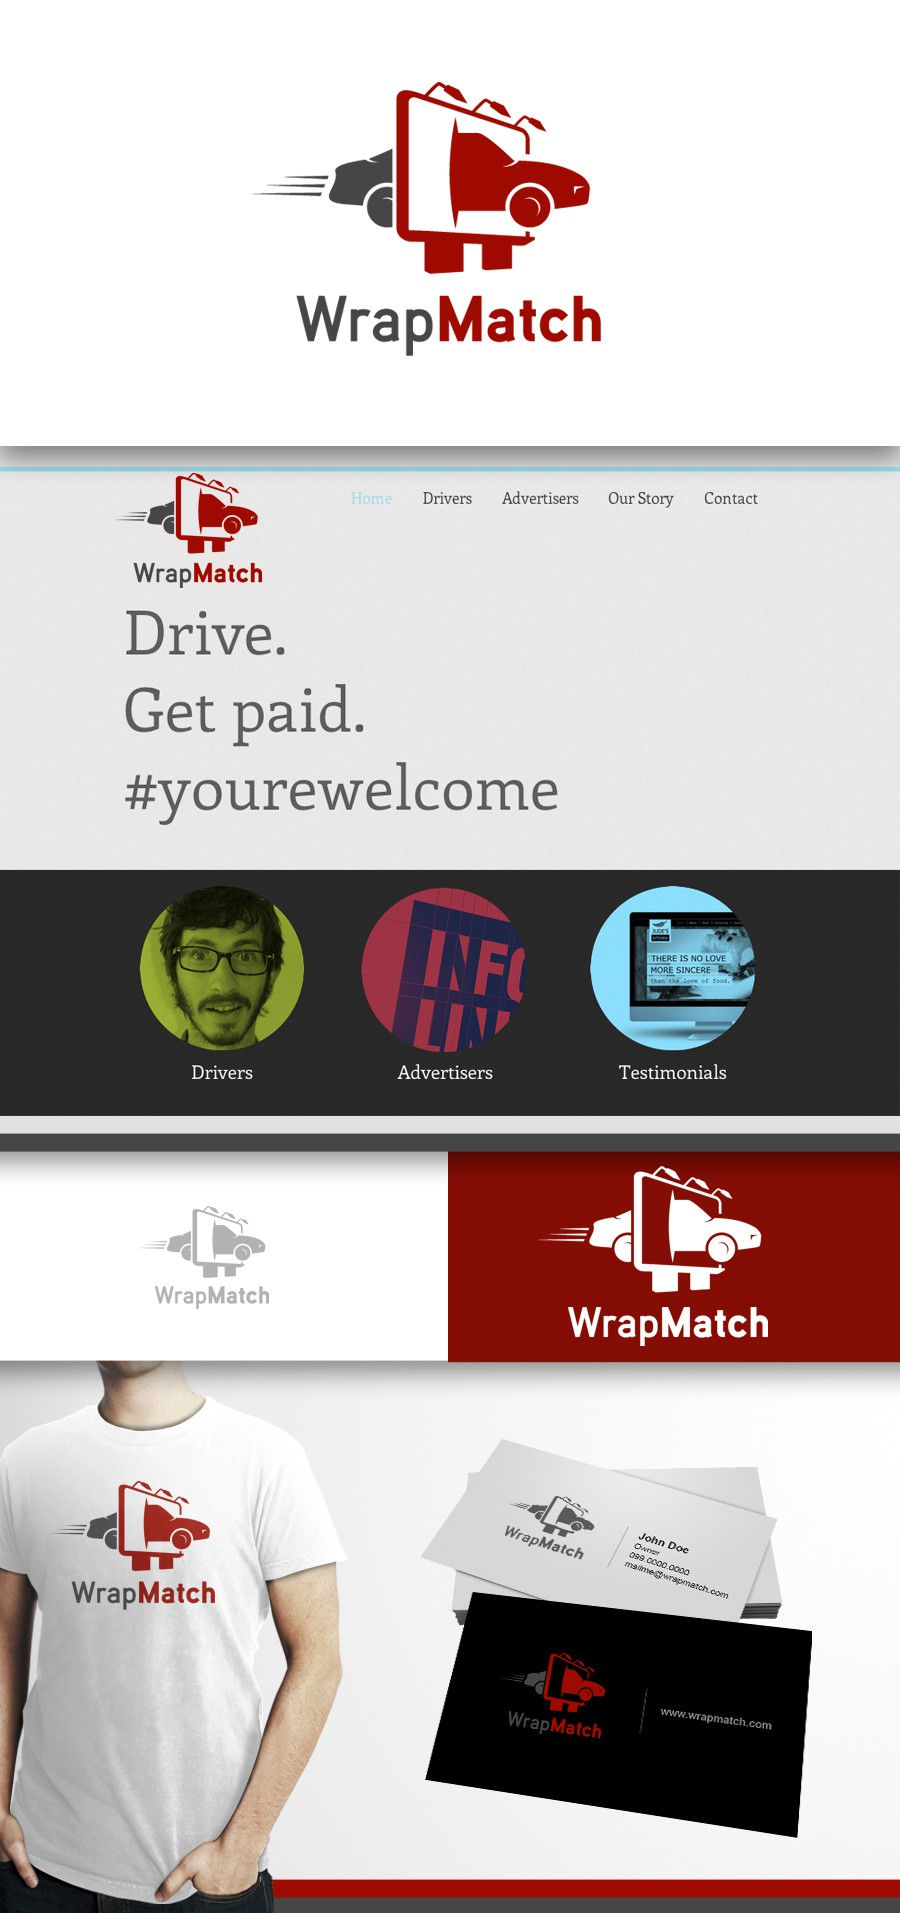 Create the next logo for WrapMatch.com